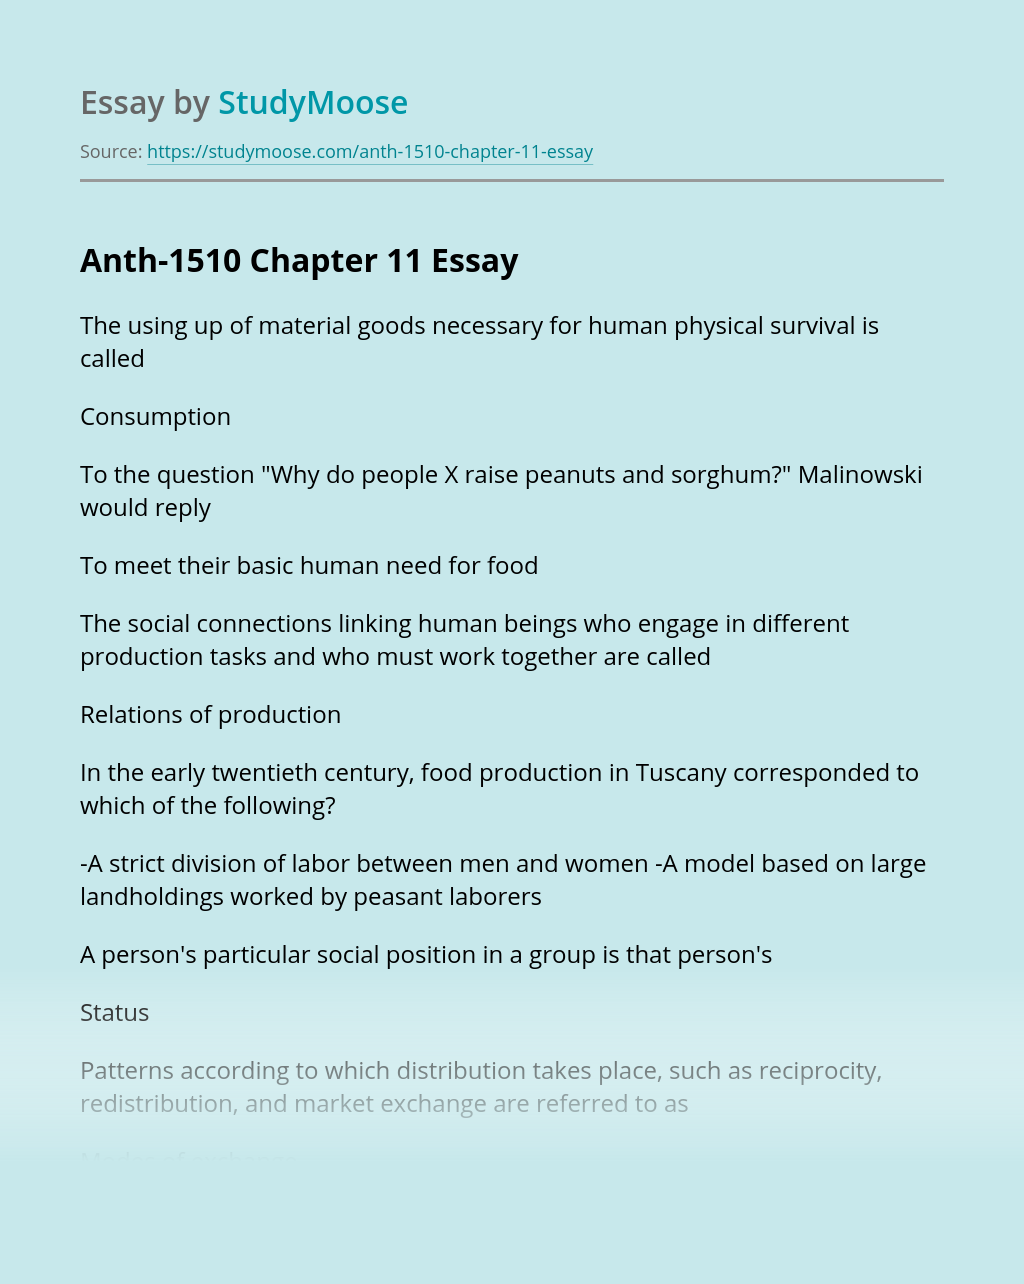 Anth-1510 Chapter 11